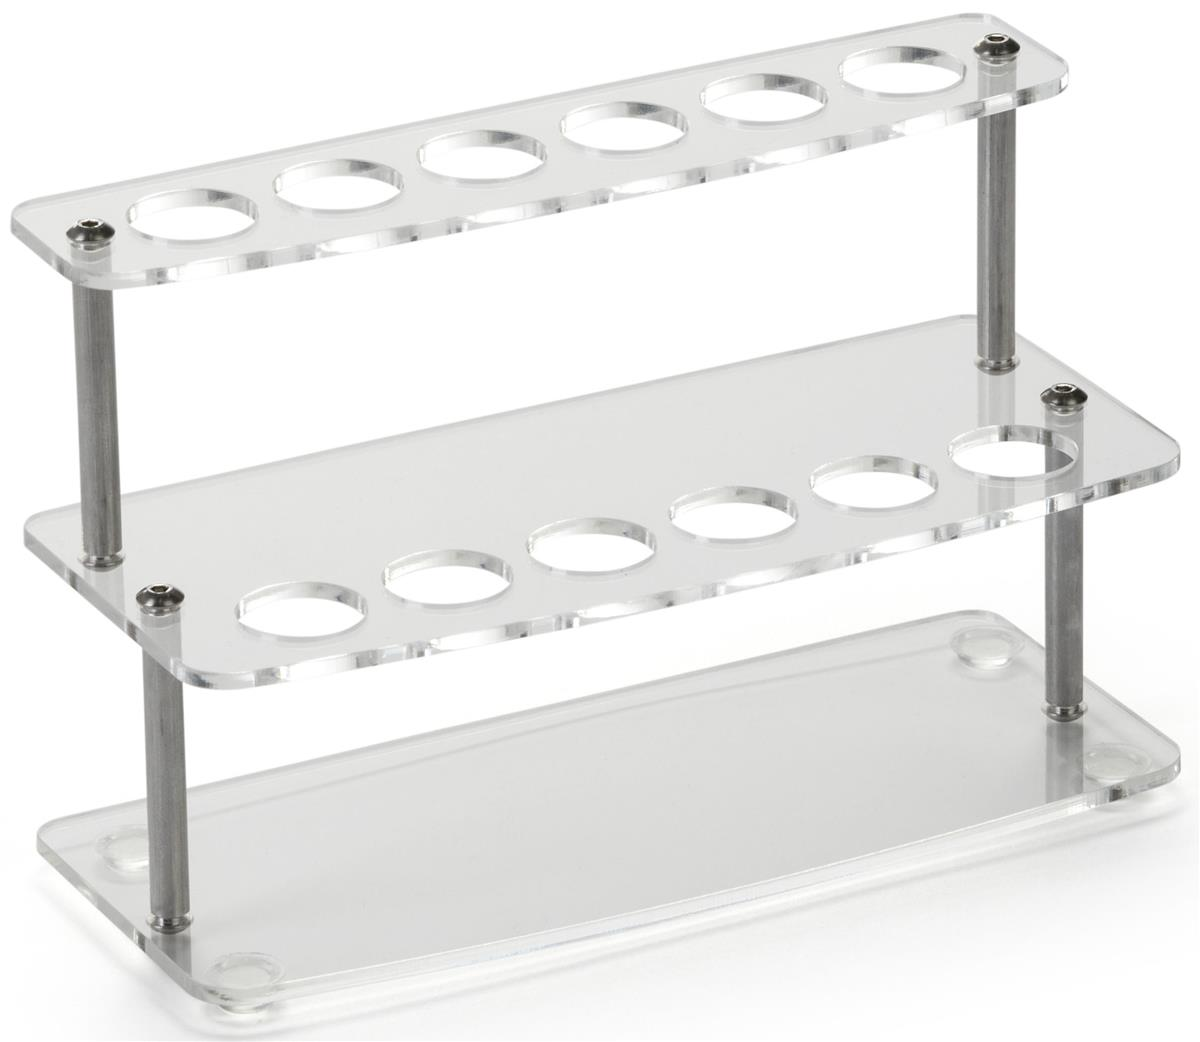 Acrylic E Cig Display 12 Hole Counter